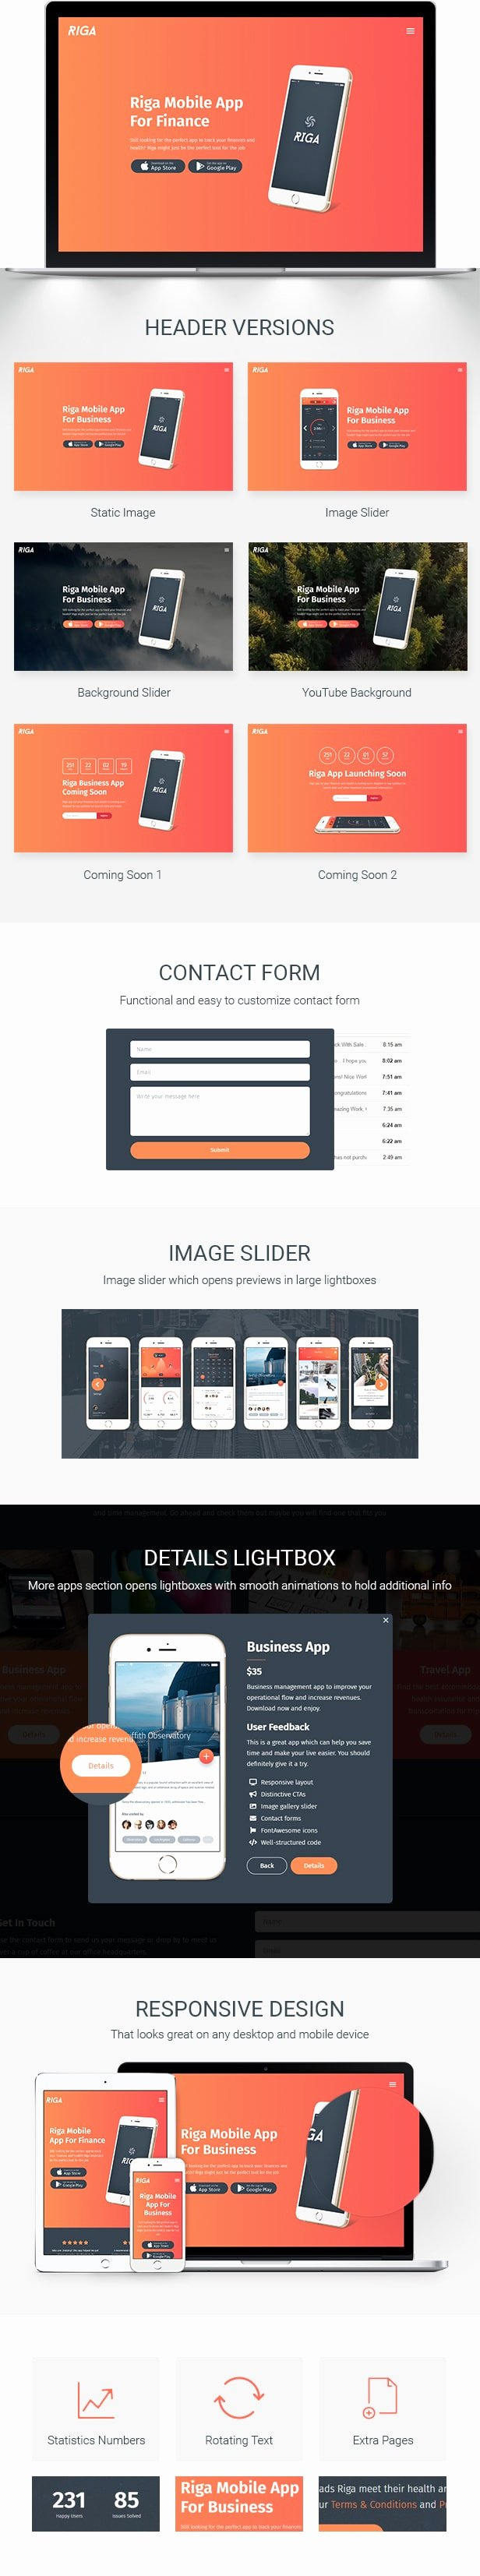 Mobile Landing Page Template Lovely Riga Mobile App Landing Page Template by Inovatikthemes